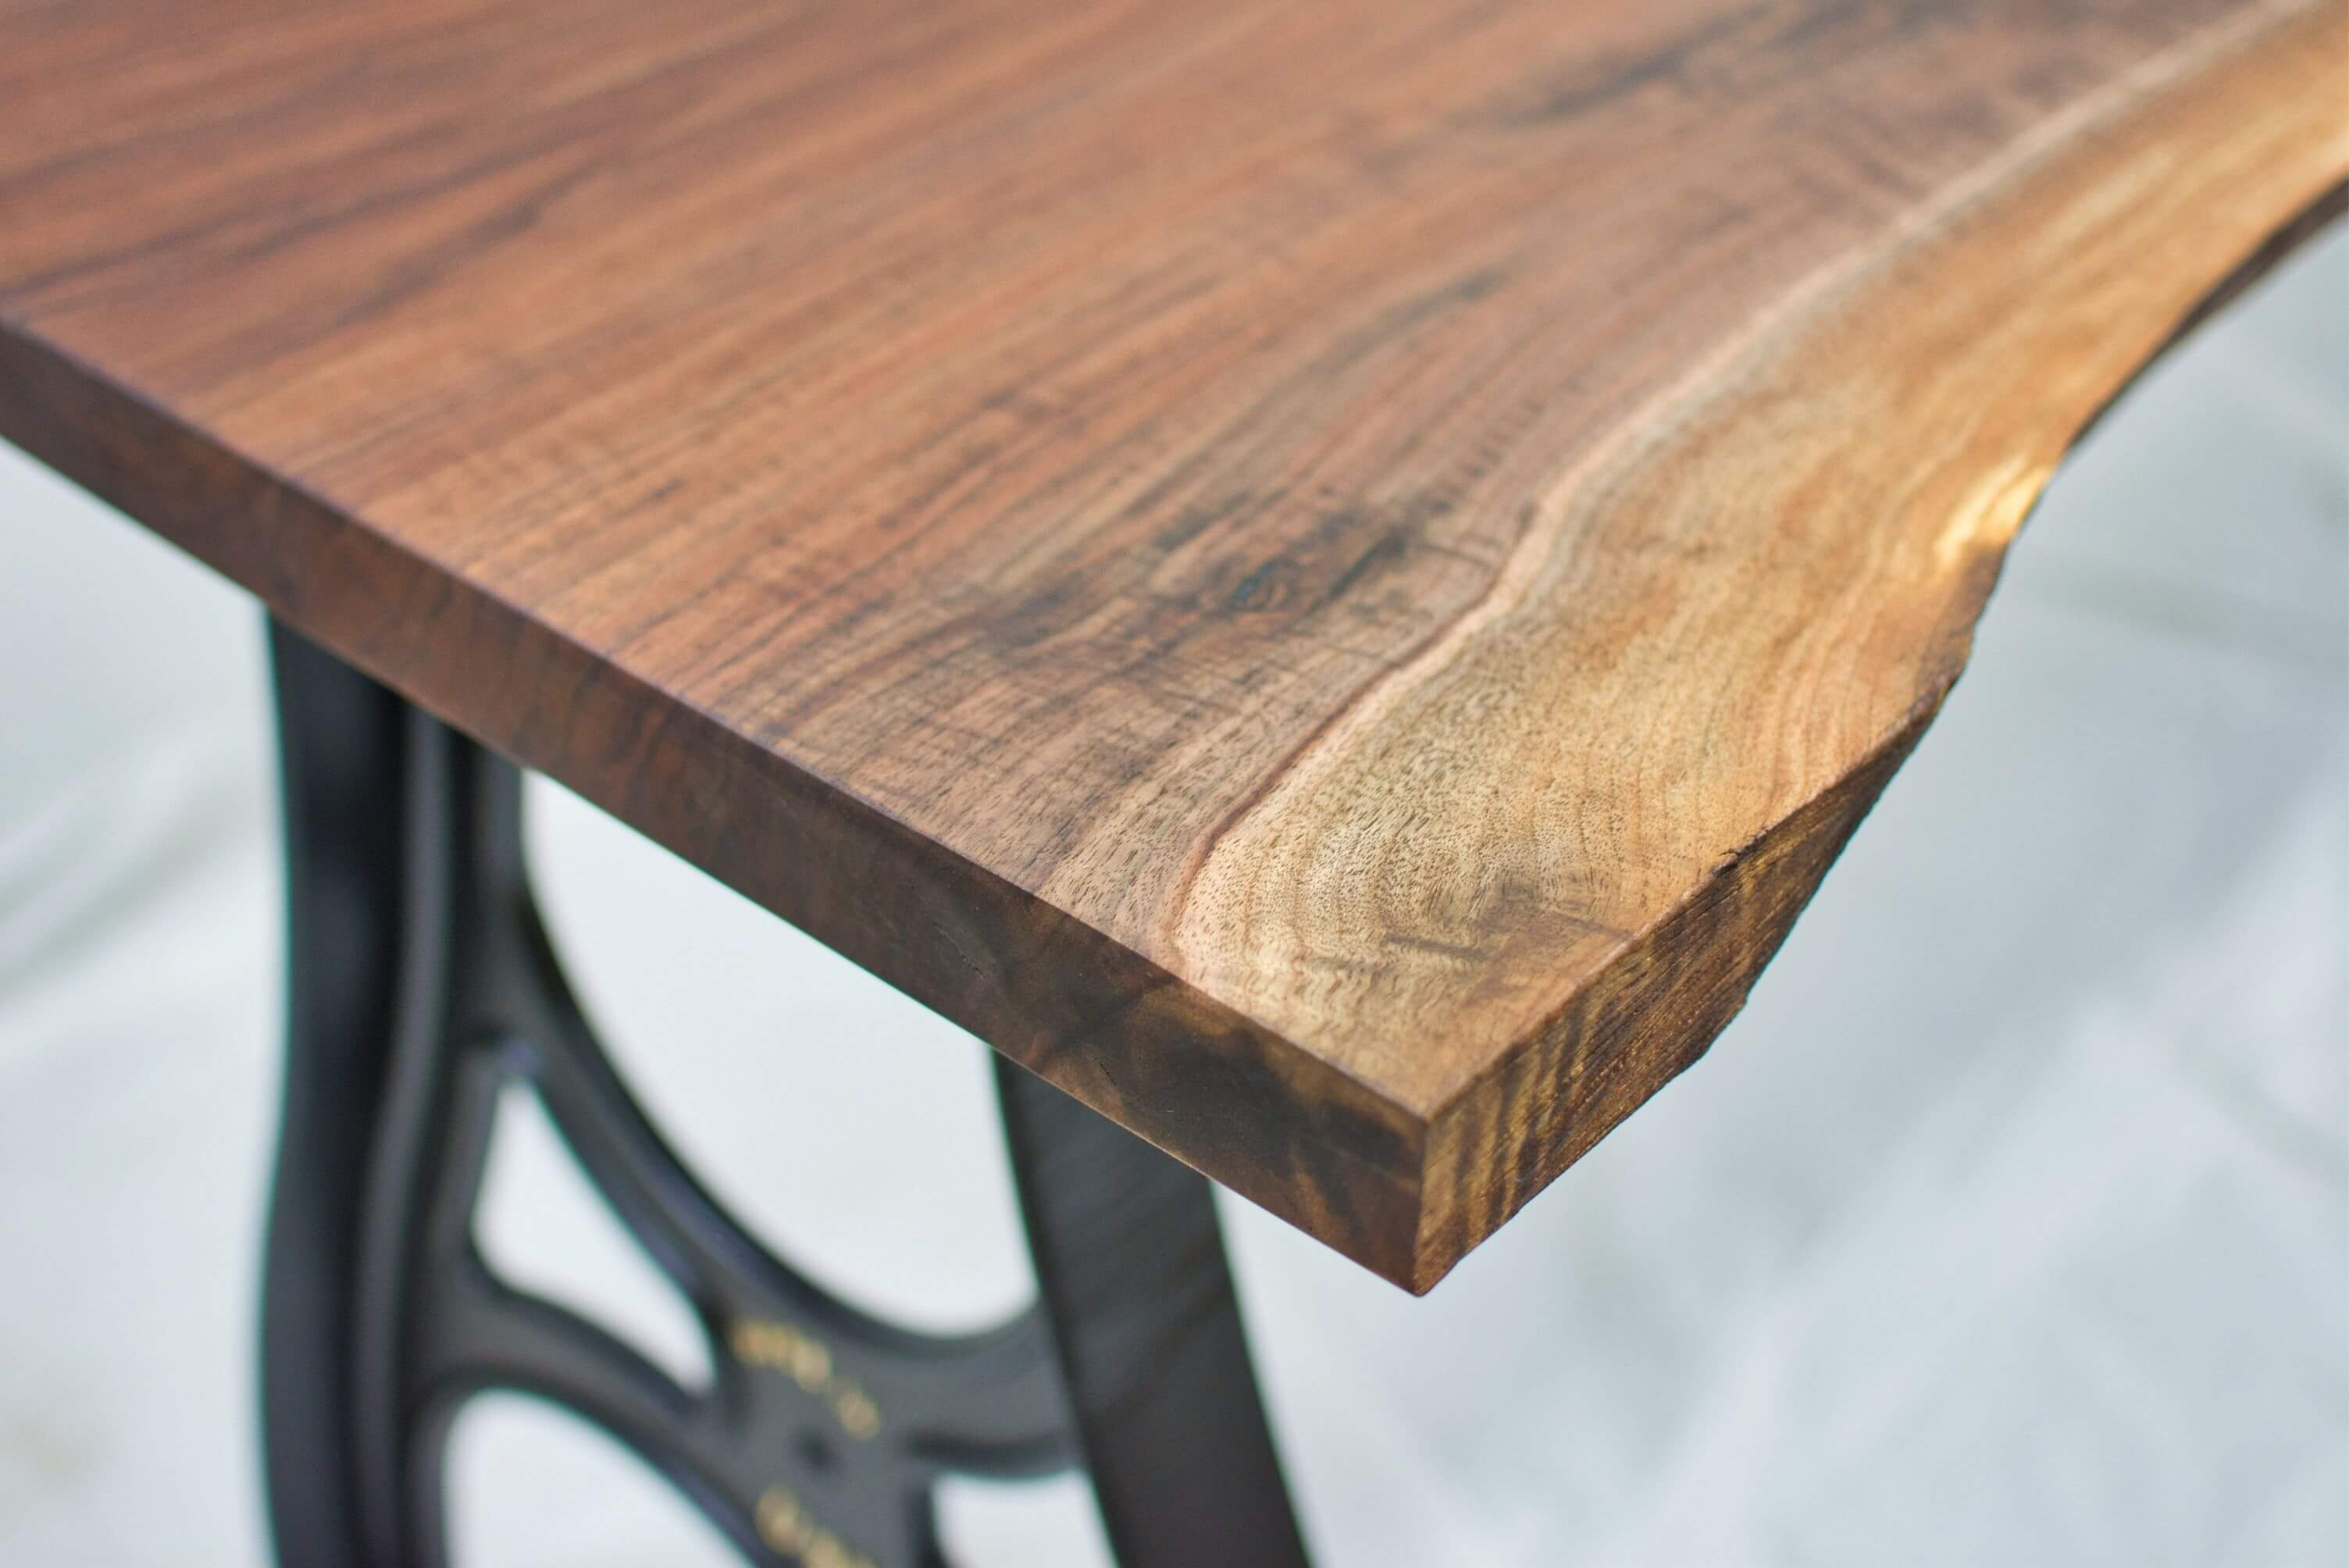 Walnut table with cast aluminum legs finished with Rubio Monocoat Oil Plus 2C.